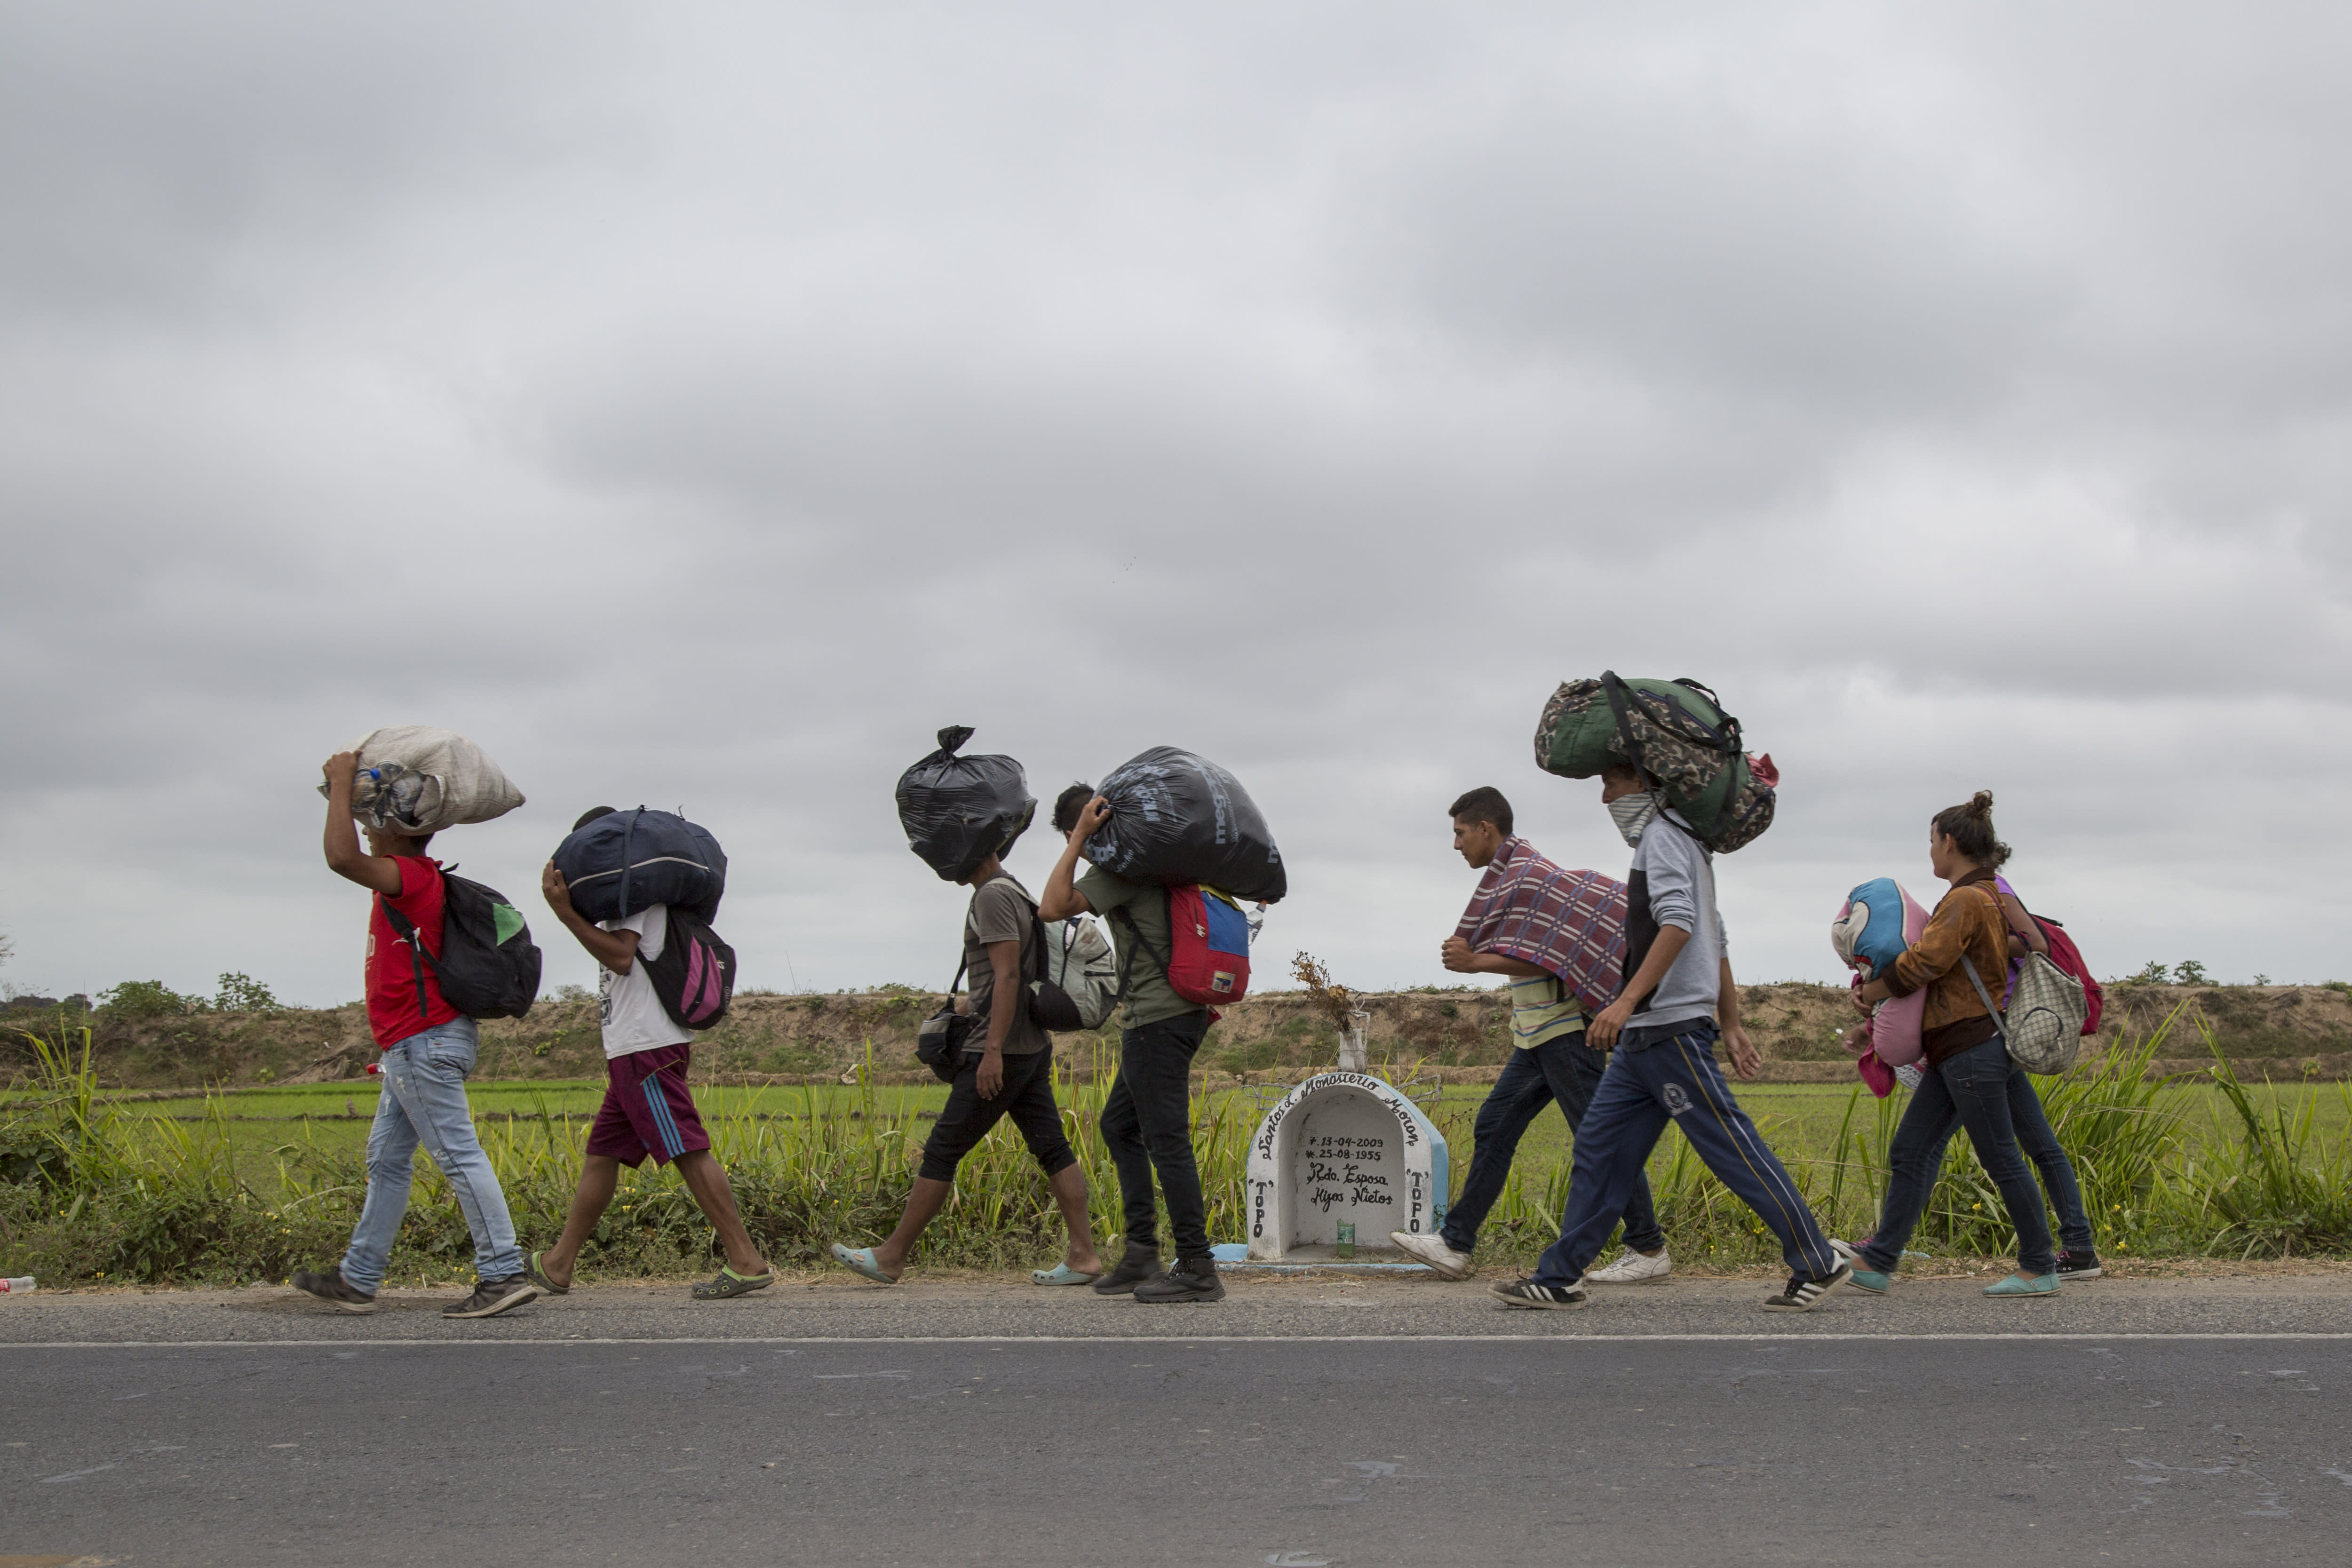 <p>A group of Venezuelans walk along the Panamericana route towards Lima on Aug. 14, 2018 in Tumbes, Peru. (Photo: Manuel Medir/Getty Images) </p>